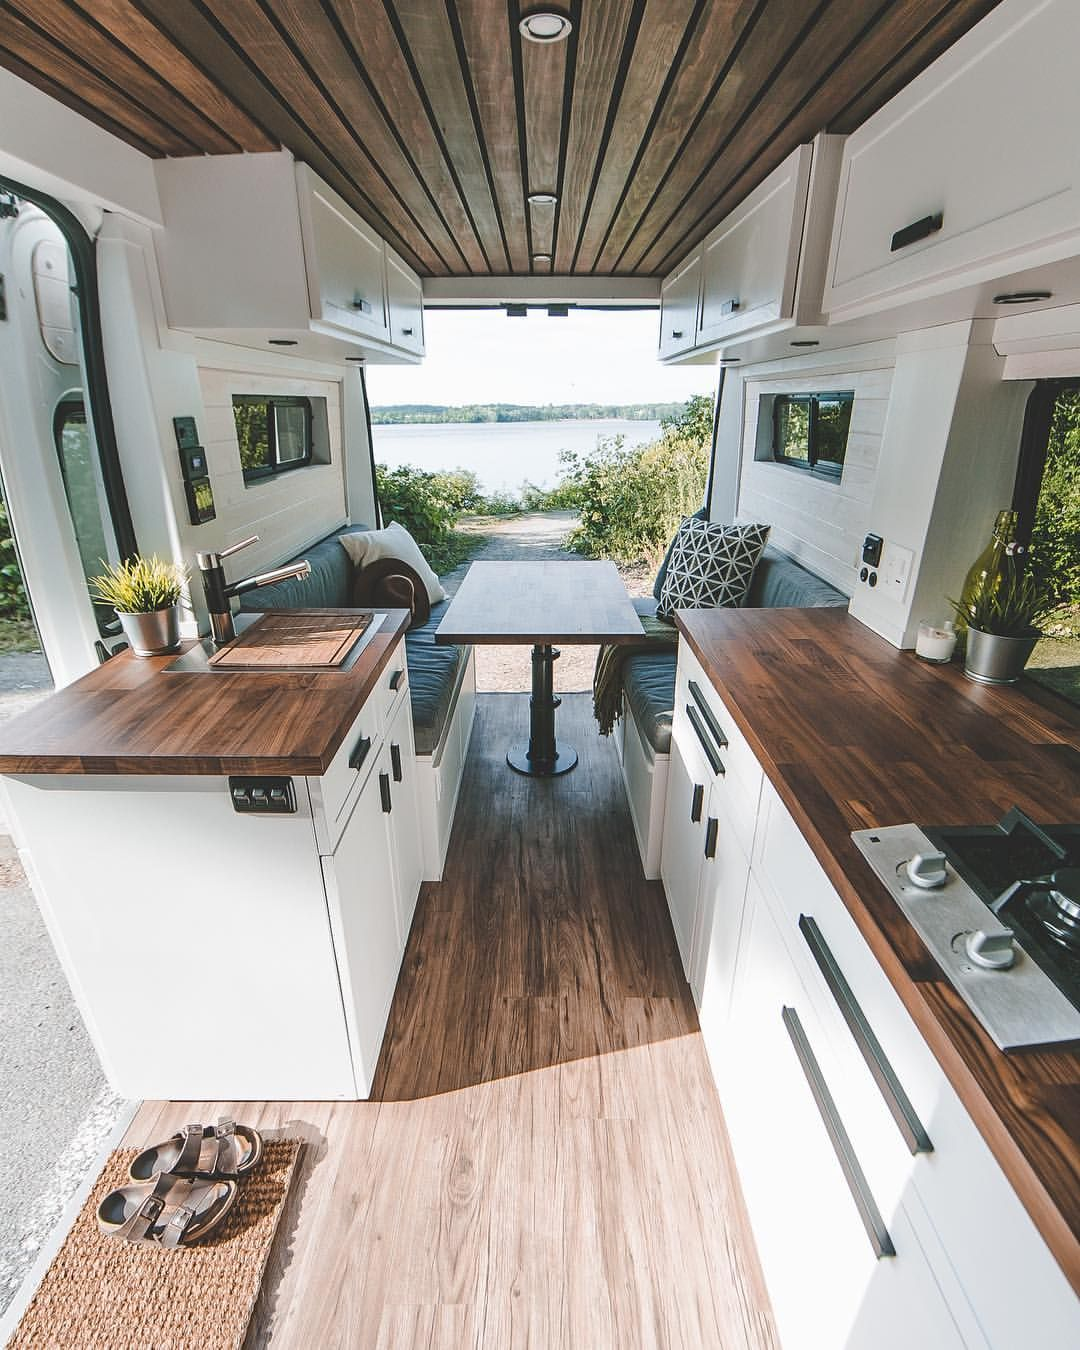 Vanlife Sagas On Instagram This Is It Folks Our Lovely Home On